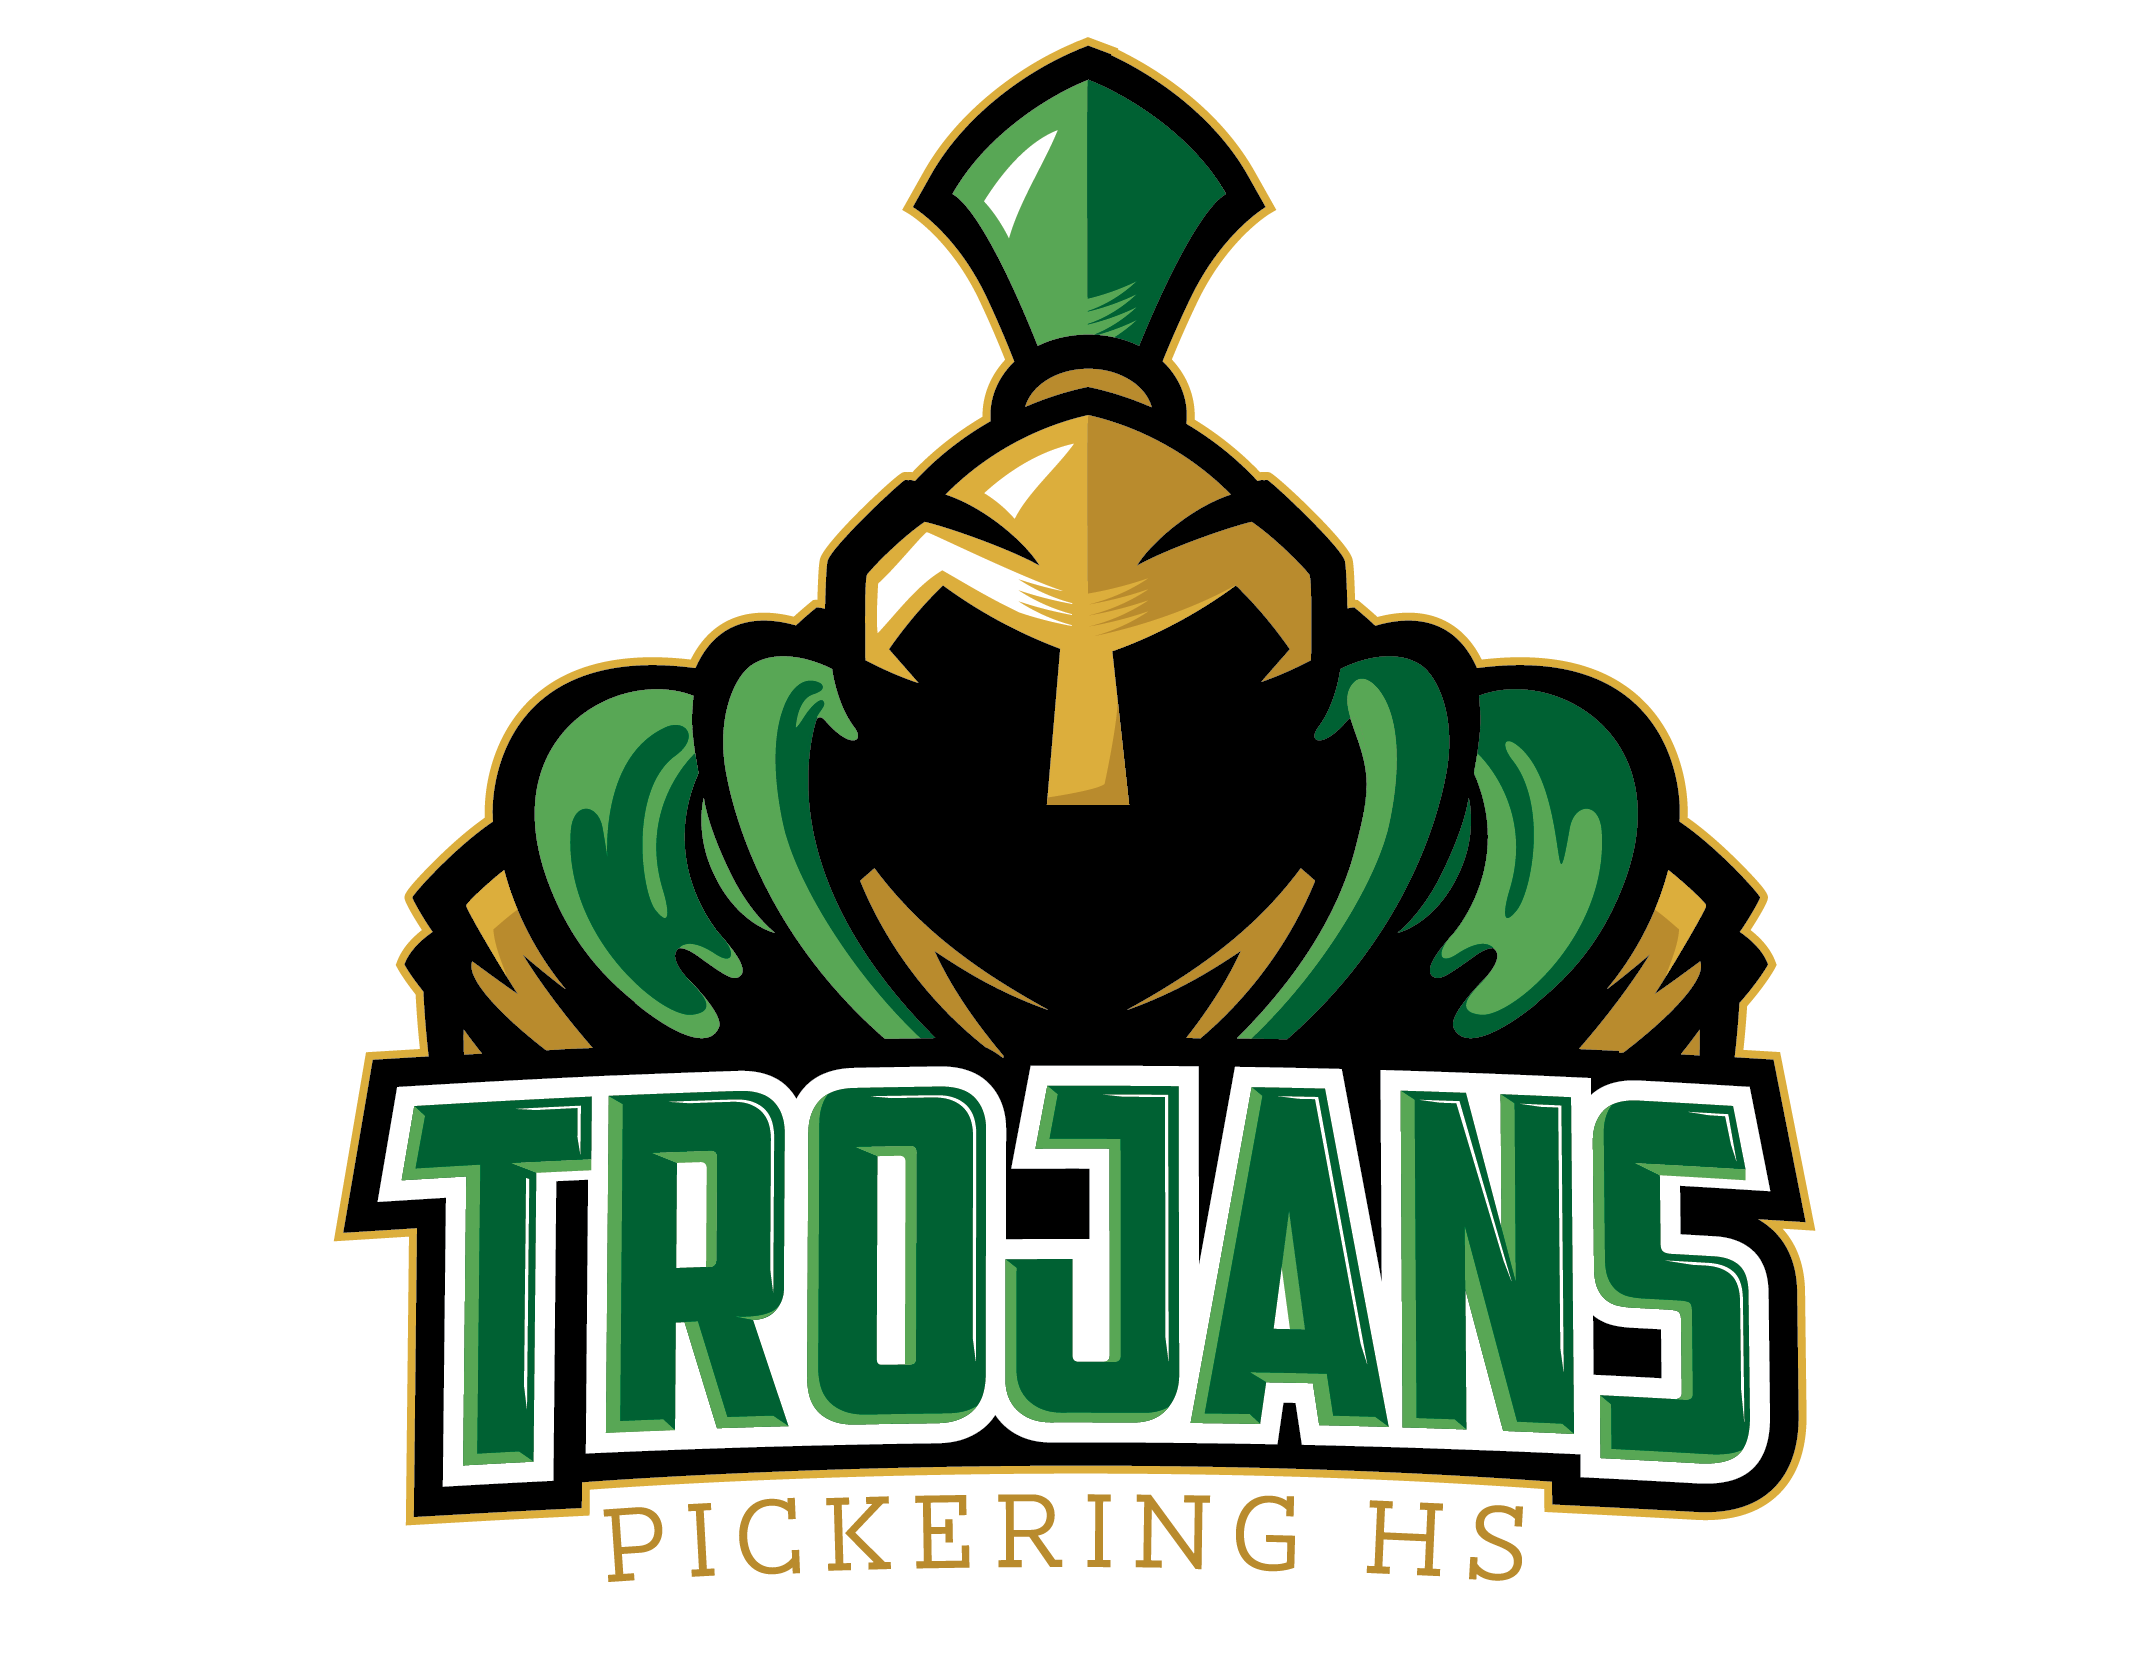 Pickering High School logo